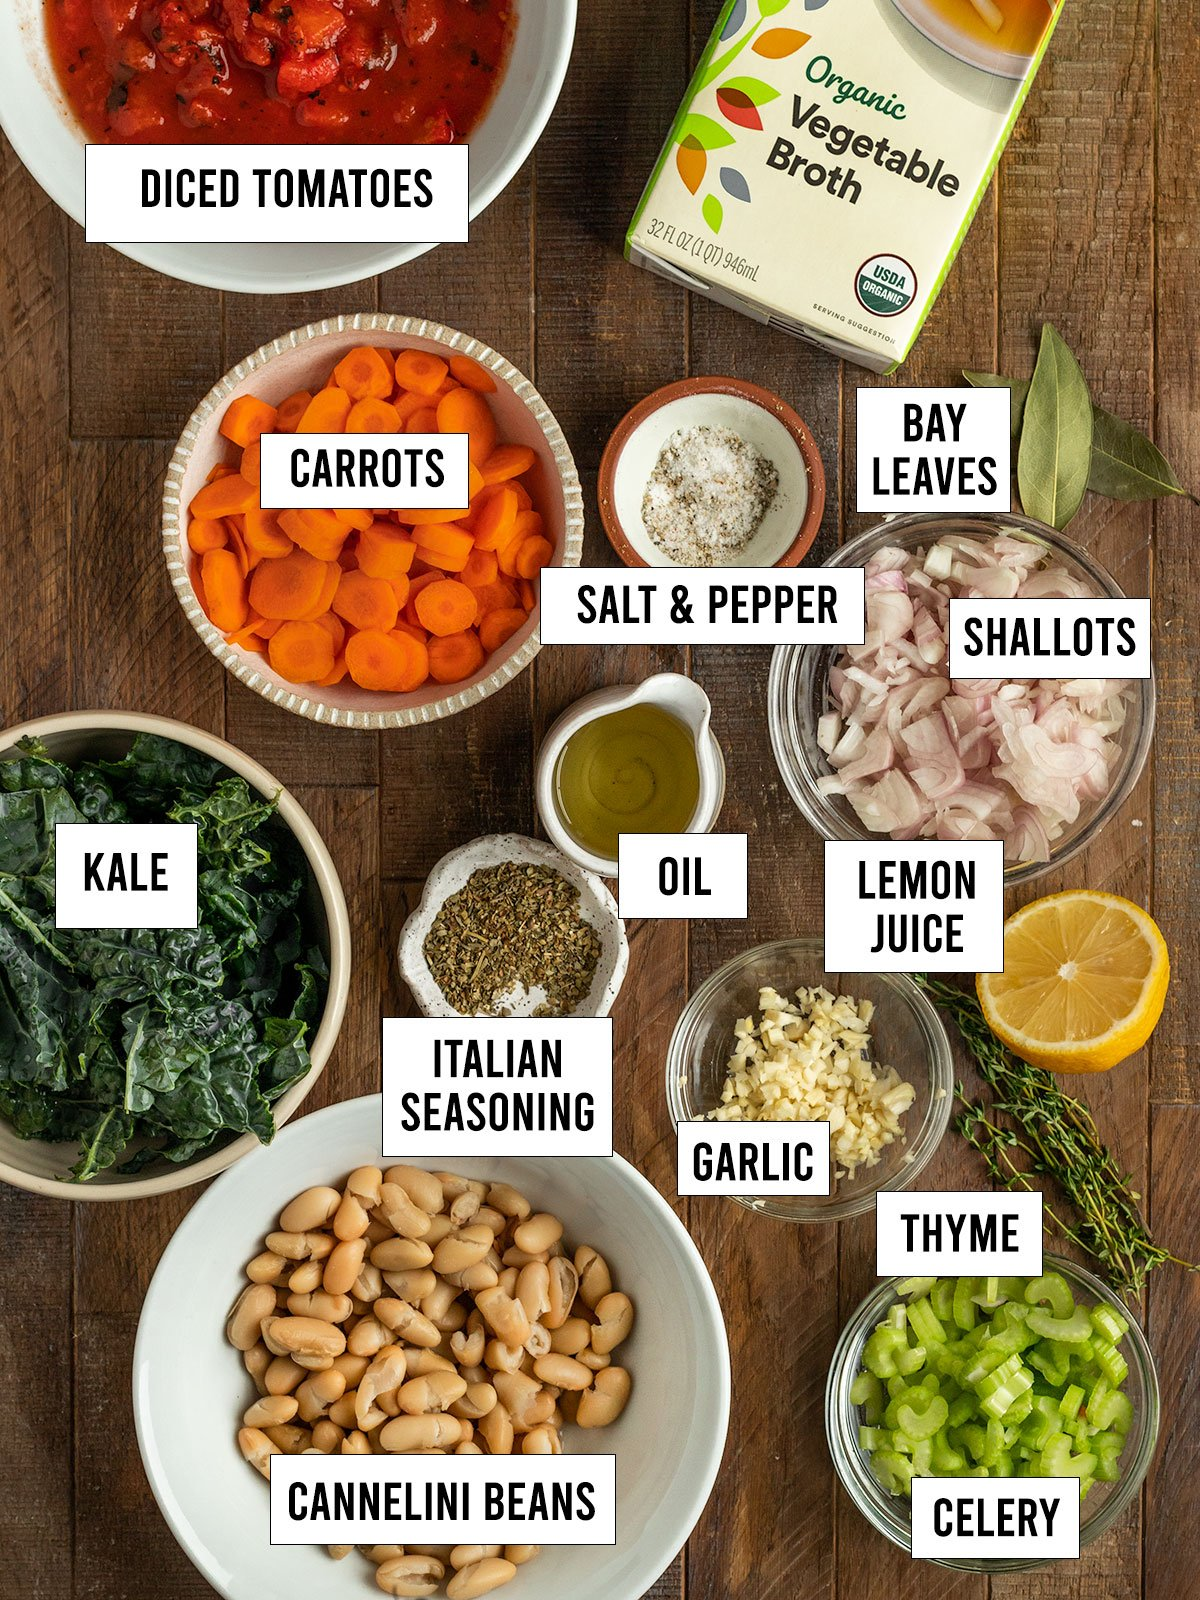 ingredients including carrots, kale, tomatoes, shallots, garlic, cannelini beans, celery, spices, salt, vegetable broth, lemon juice, oil, and bay leaves.